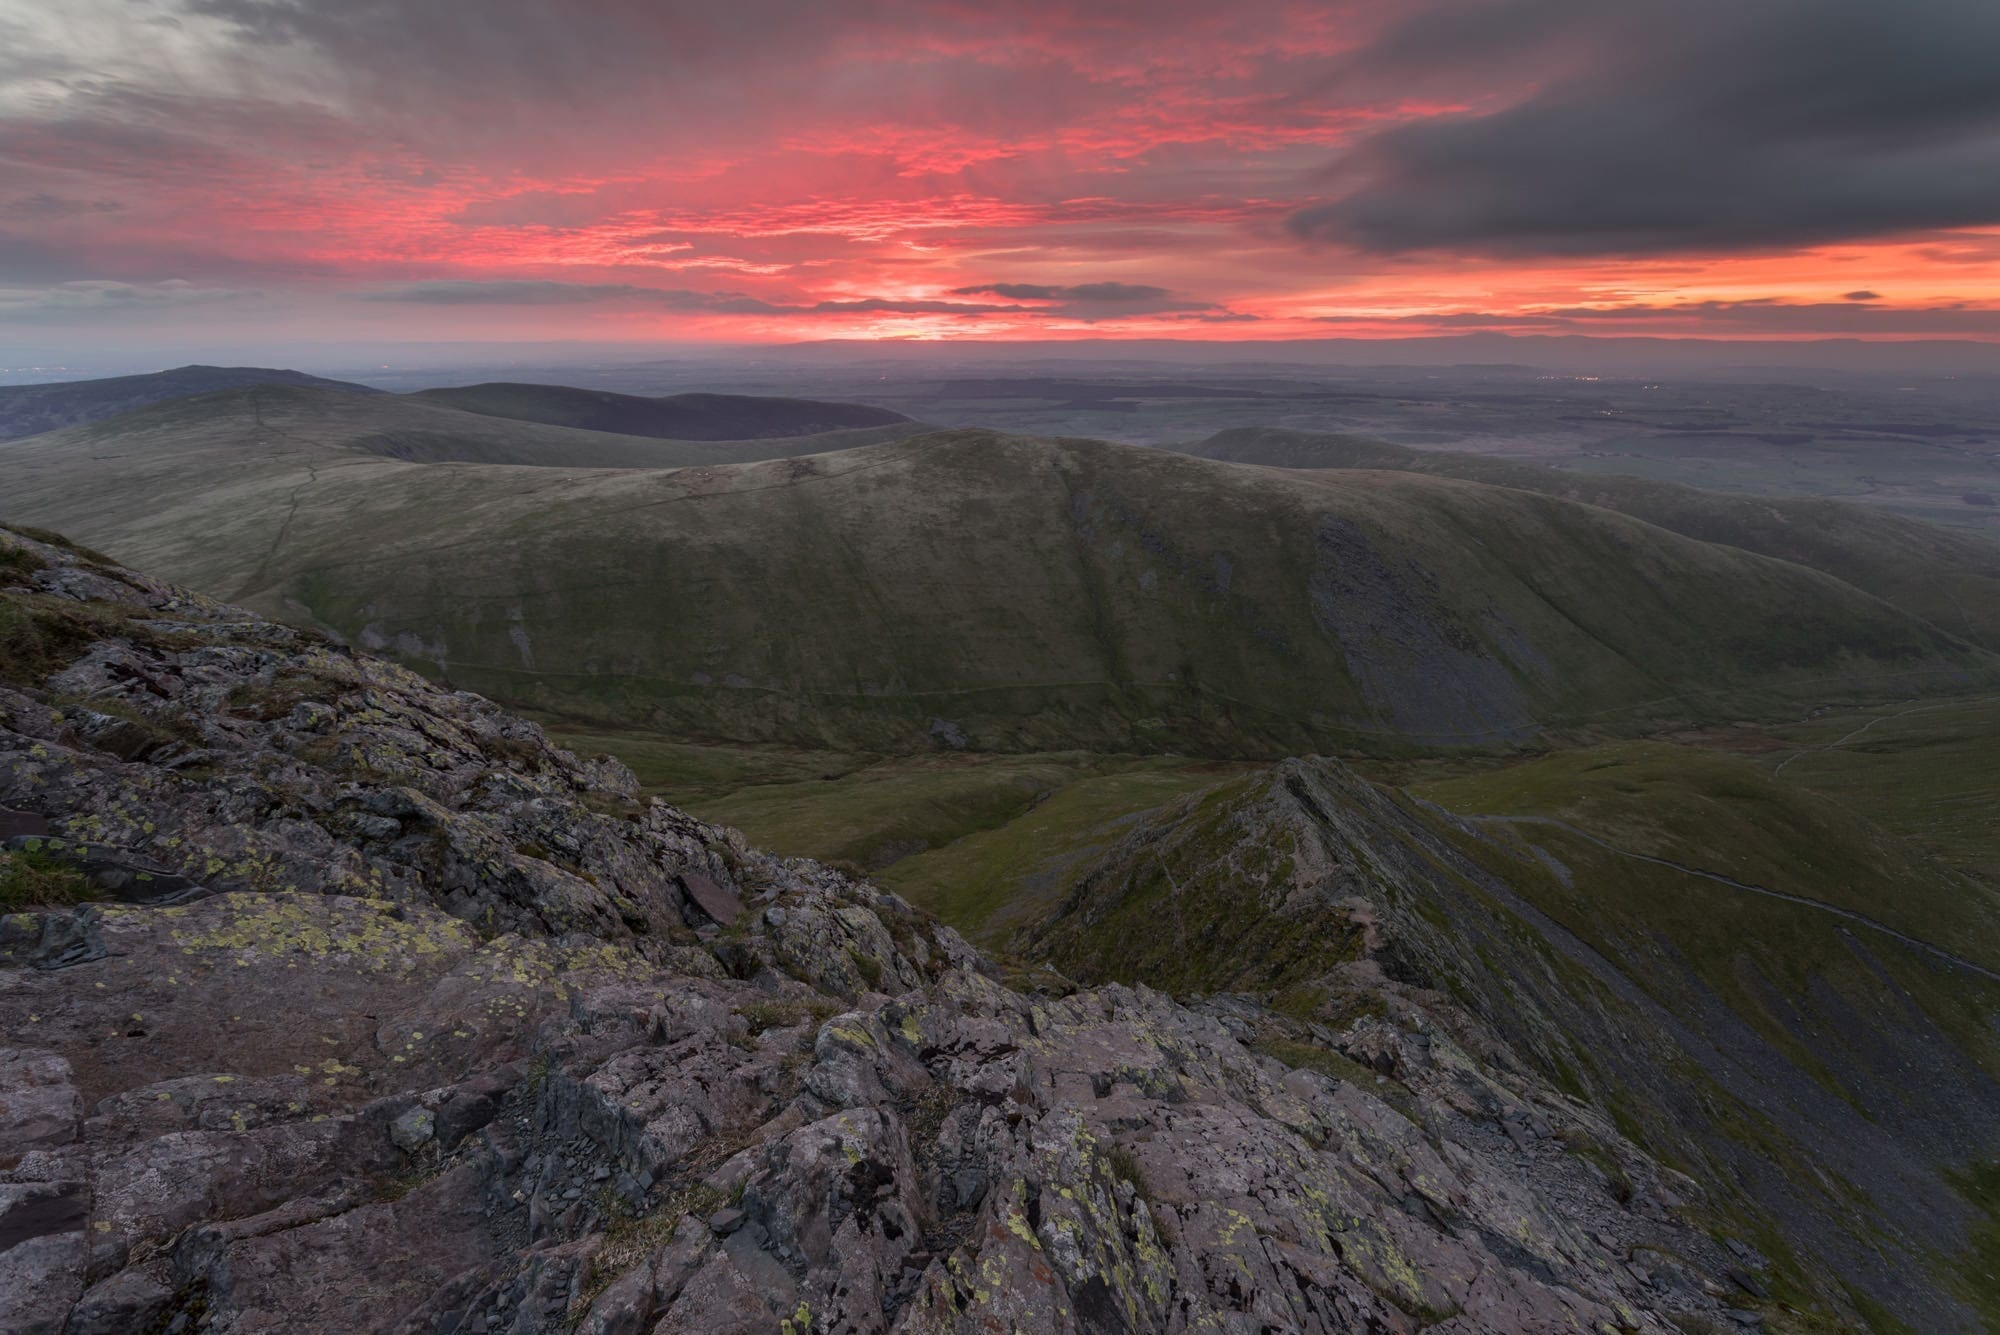 Sharp Edge Sunrise - Wild Camping Photography Workshop